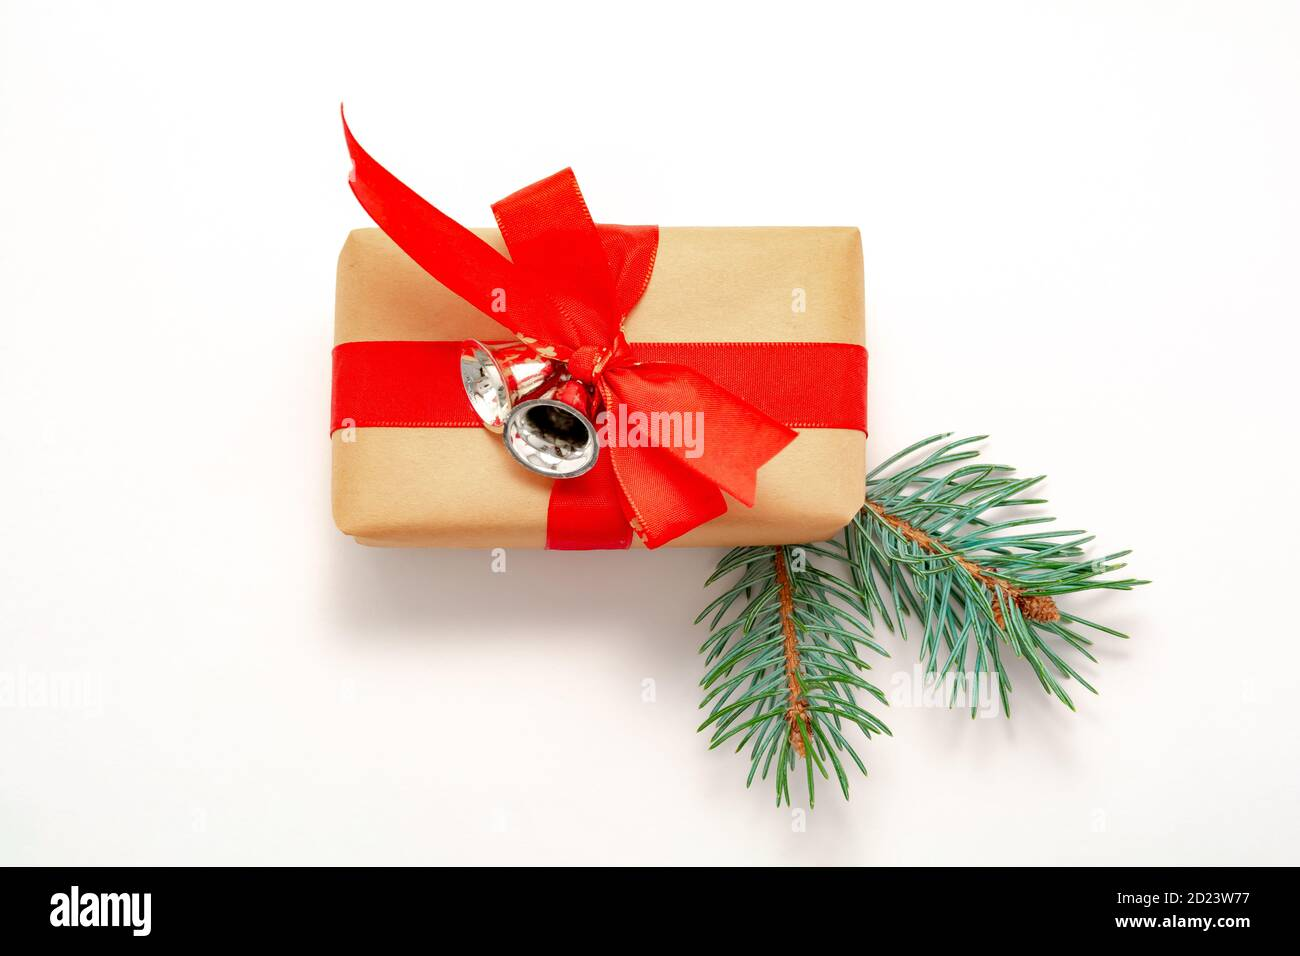 Christmas Ribbon 2021 2021 Happy New Year Merry Christmas Decorations Flatlay Banner Gift Box Red Ribbon Silver Bells Spruce Branch Top View Stock Photo Alamy